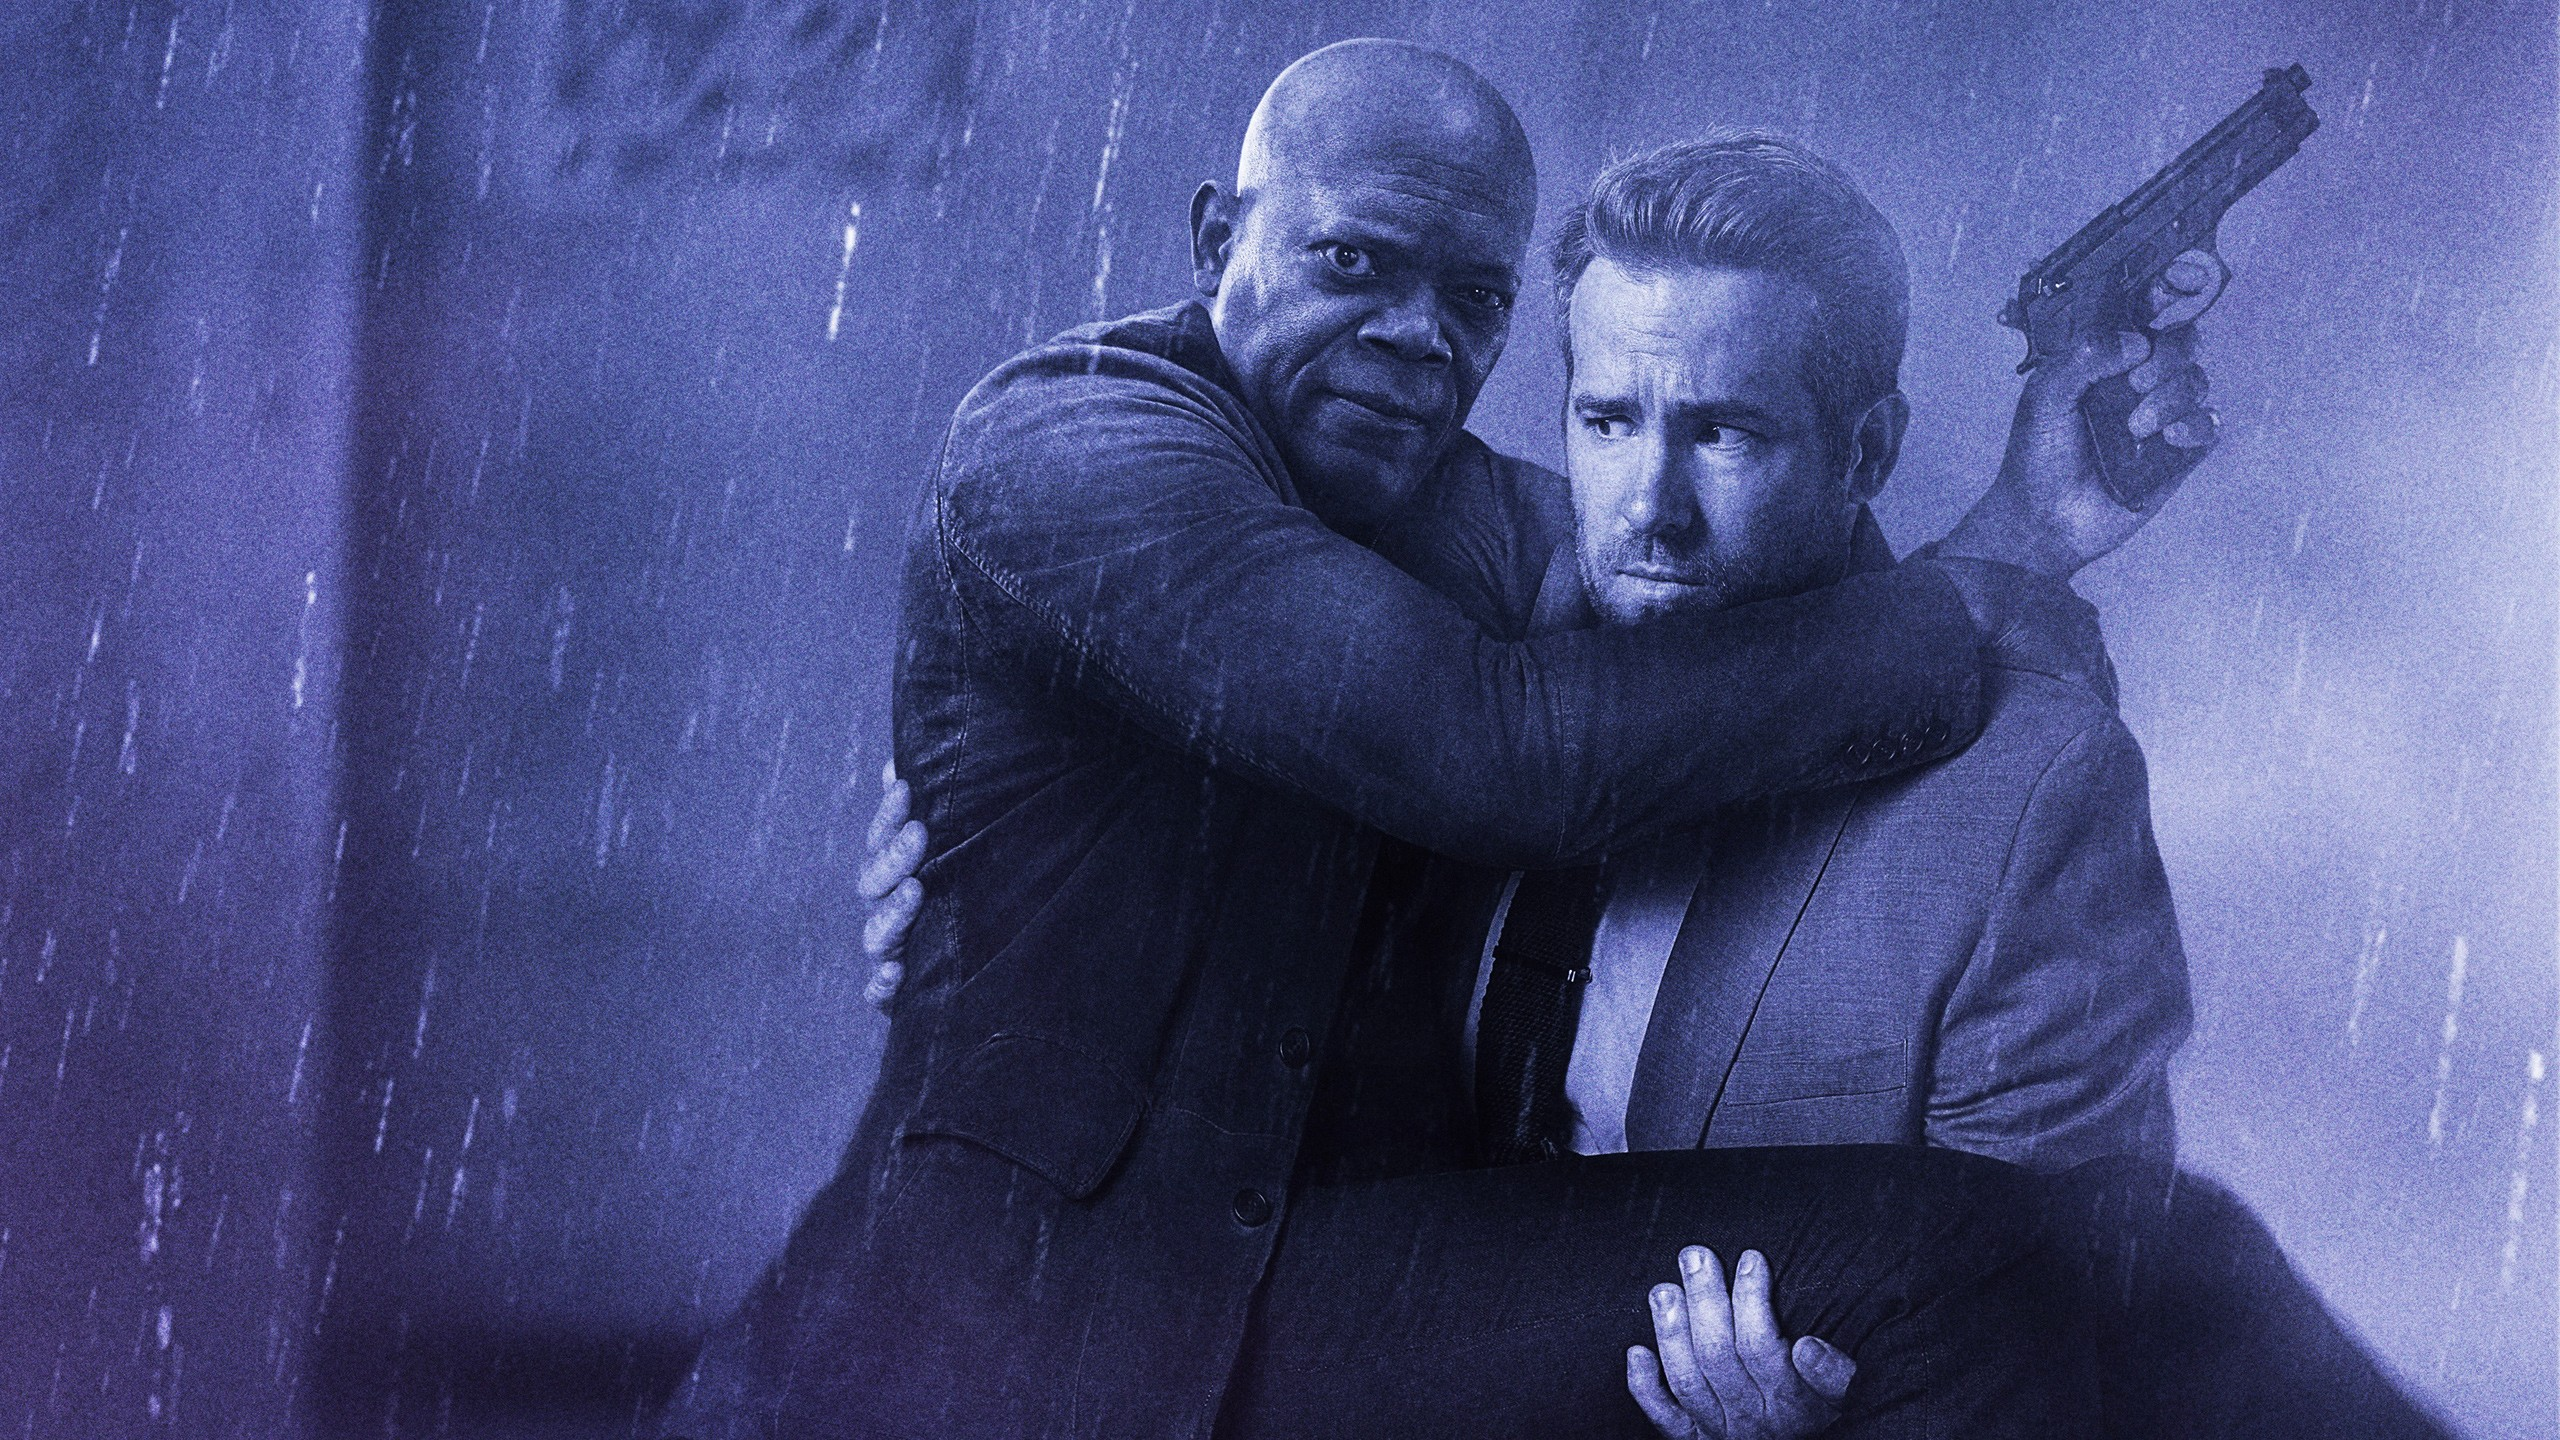 3d Apple Wallpaper Hd 1080p Download The Hitmans Bodyguard 2017 Wallpapers Hd Wallpapers Id